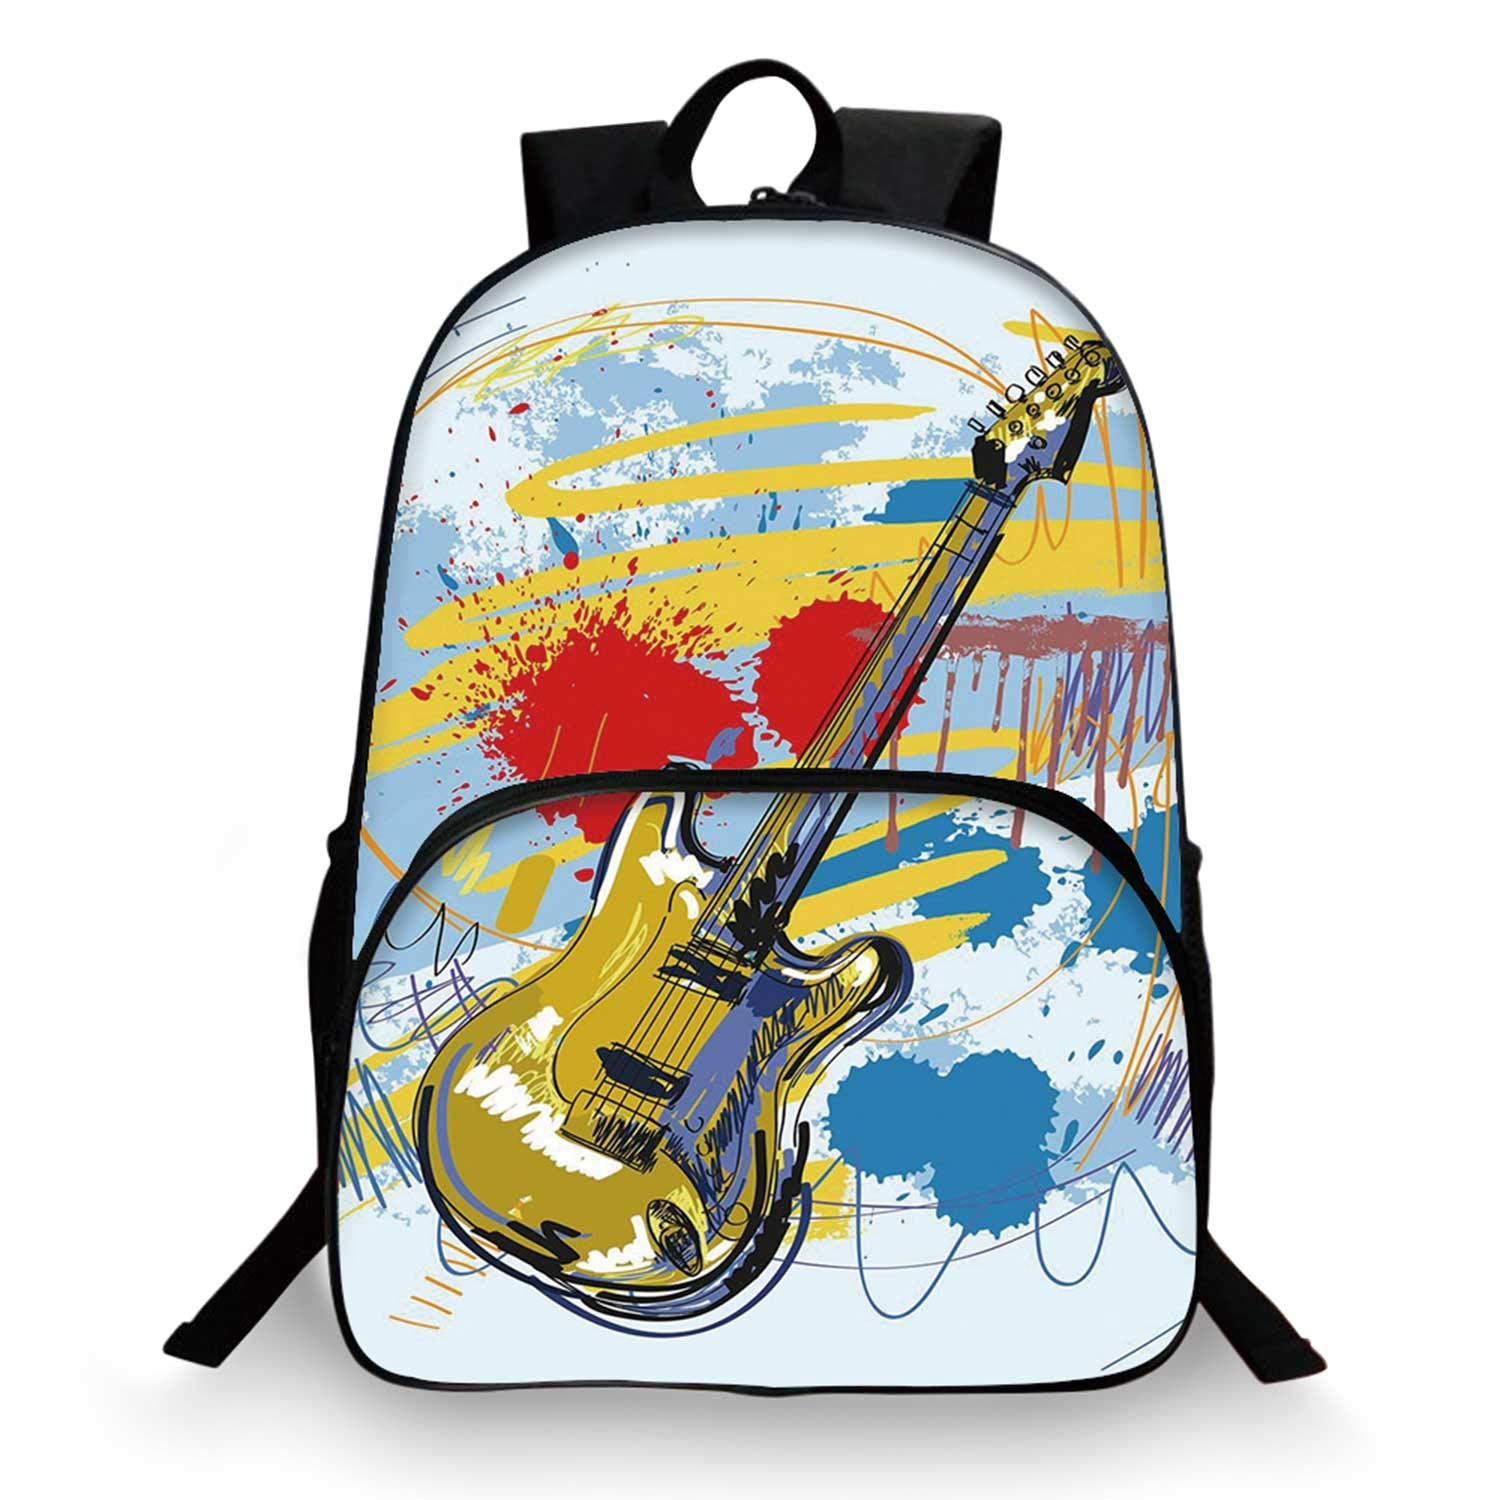 Art Various Schoolbag,Abstract Musical Instrument Expressionist Artwork Stained and Tainted Background Print for student,11''Lx6''Wx15''H by C COABALLA